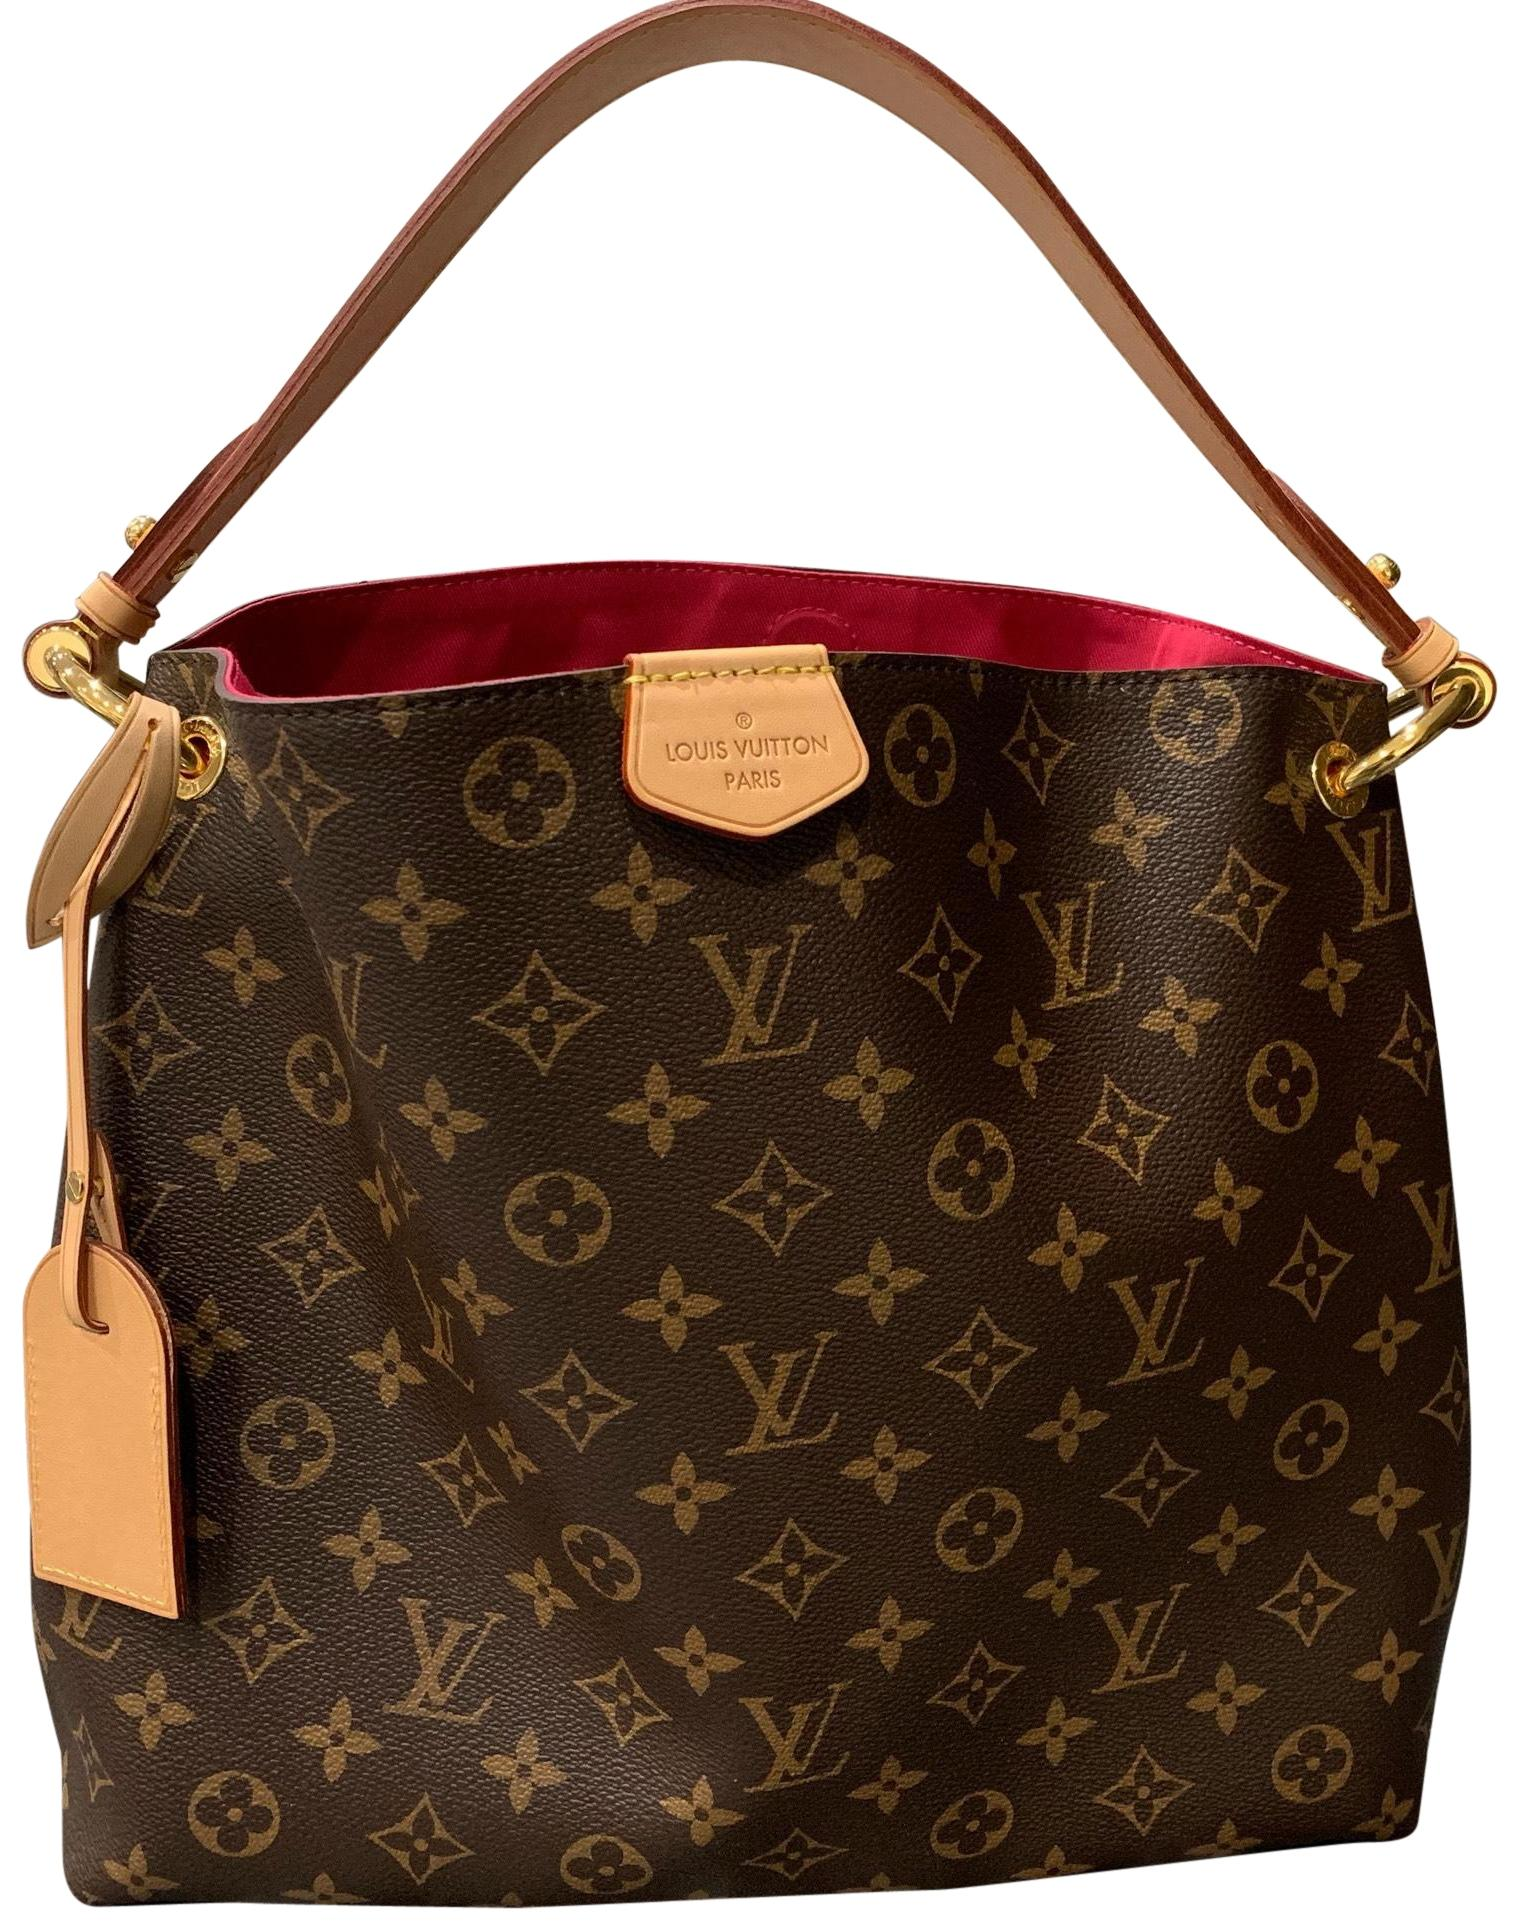 Louis Vuitton Graceful Pm Pink Colored Lining Monogram With